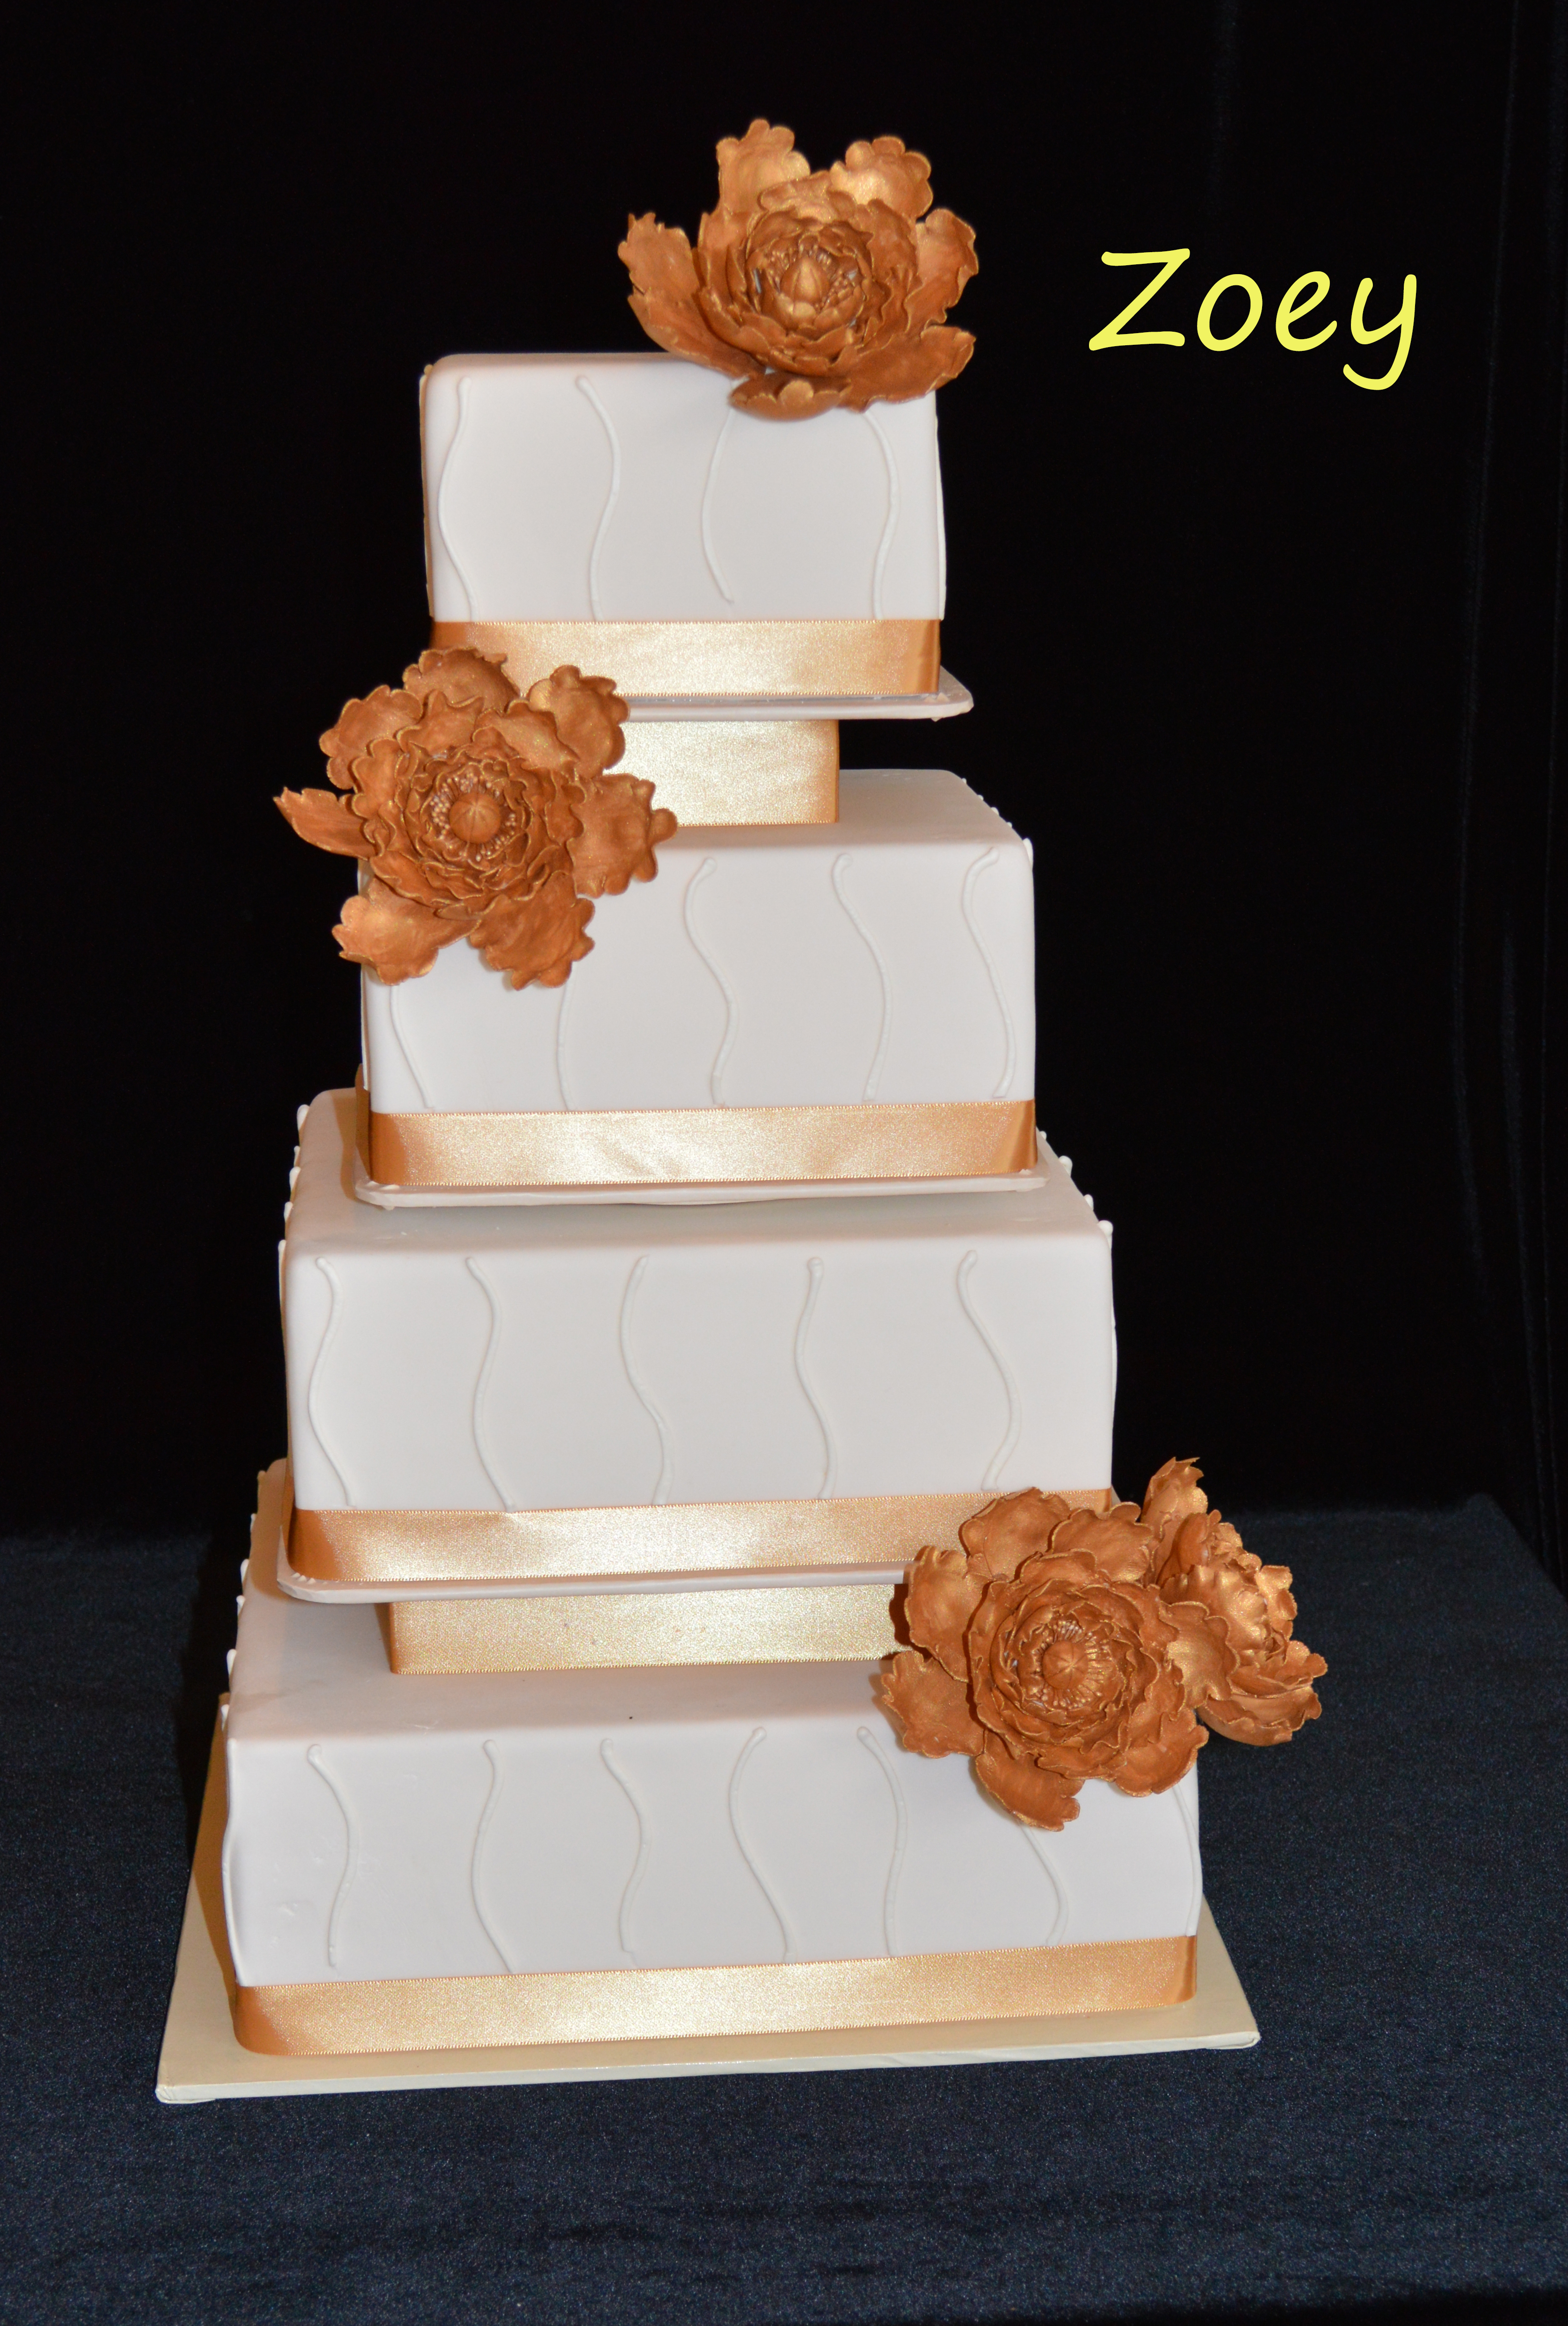 Wedding Cake Designs Zoey